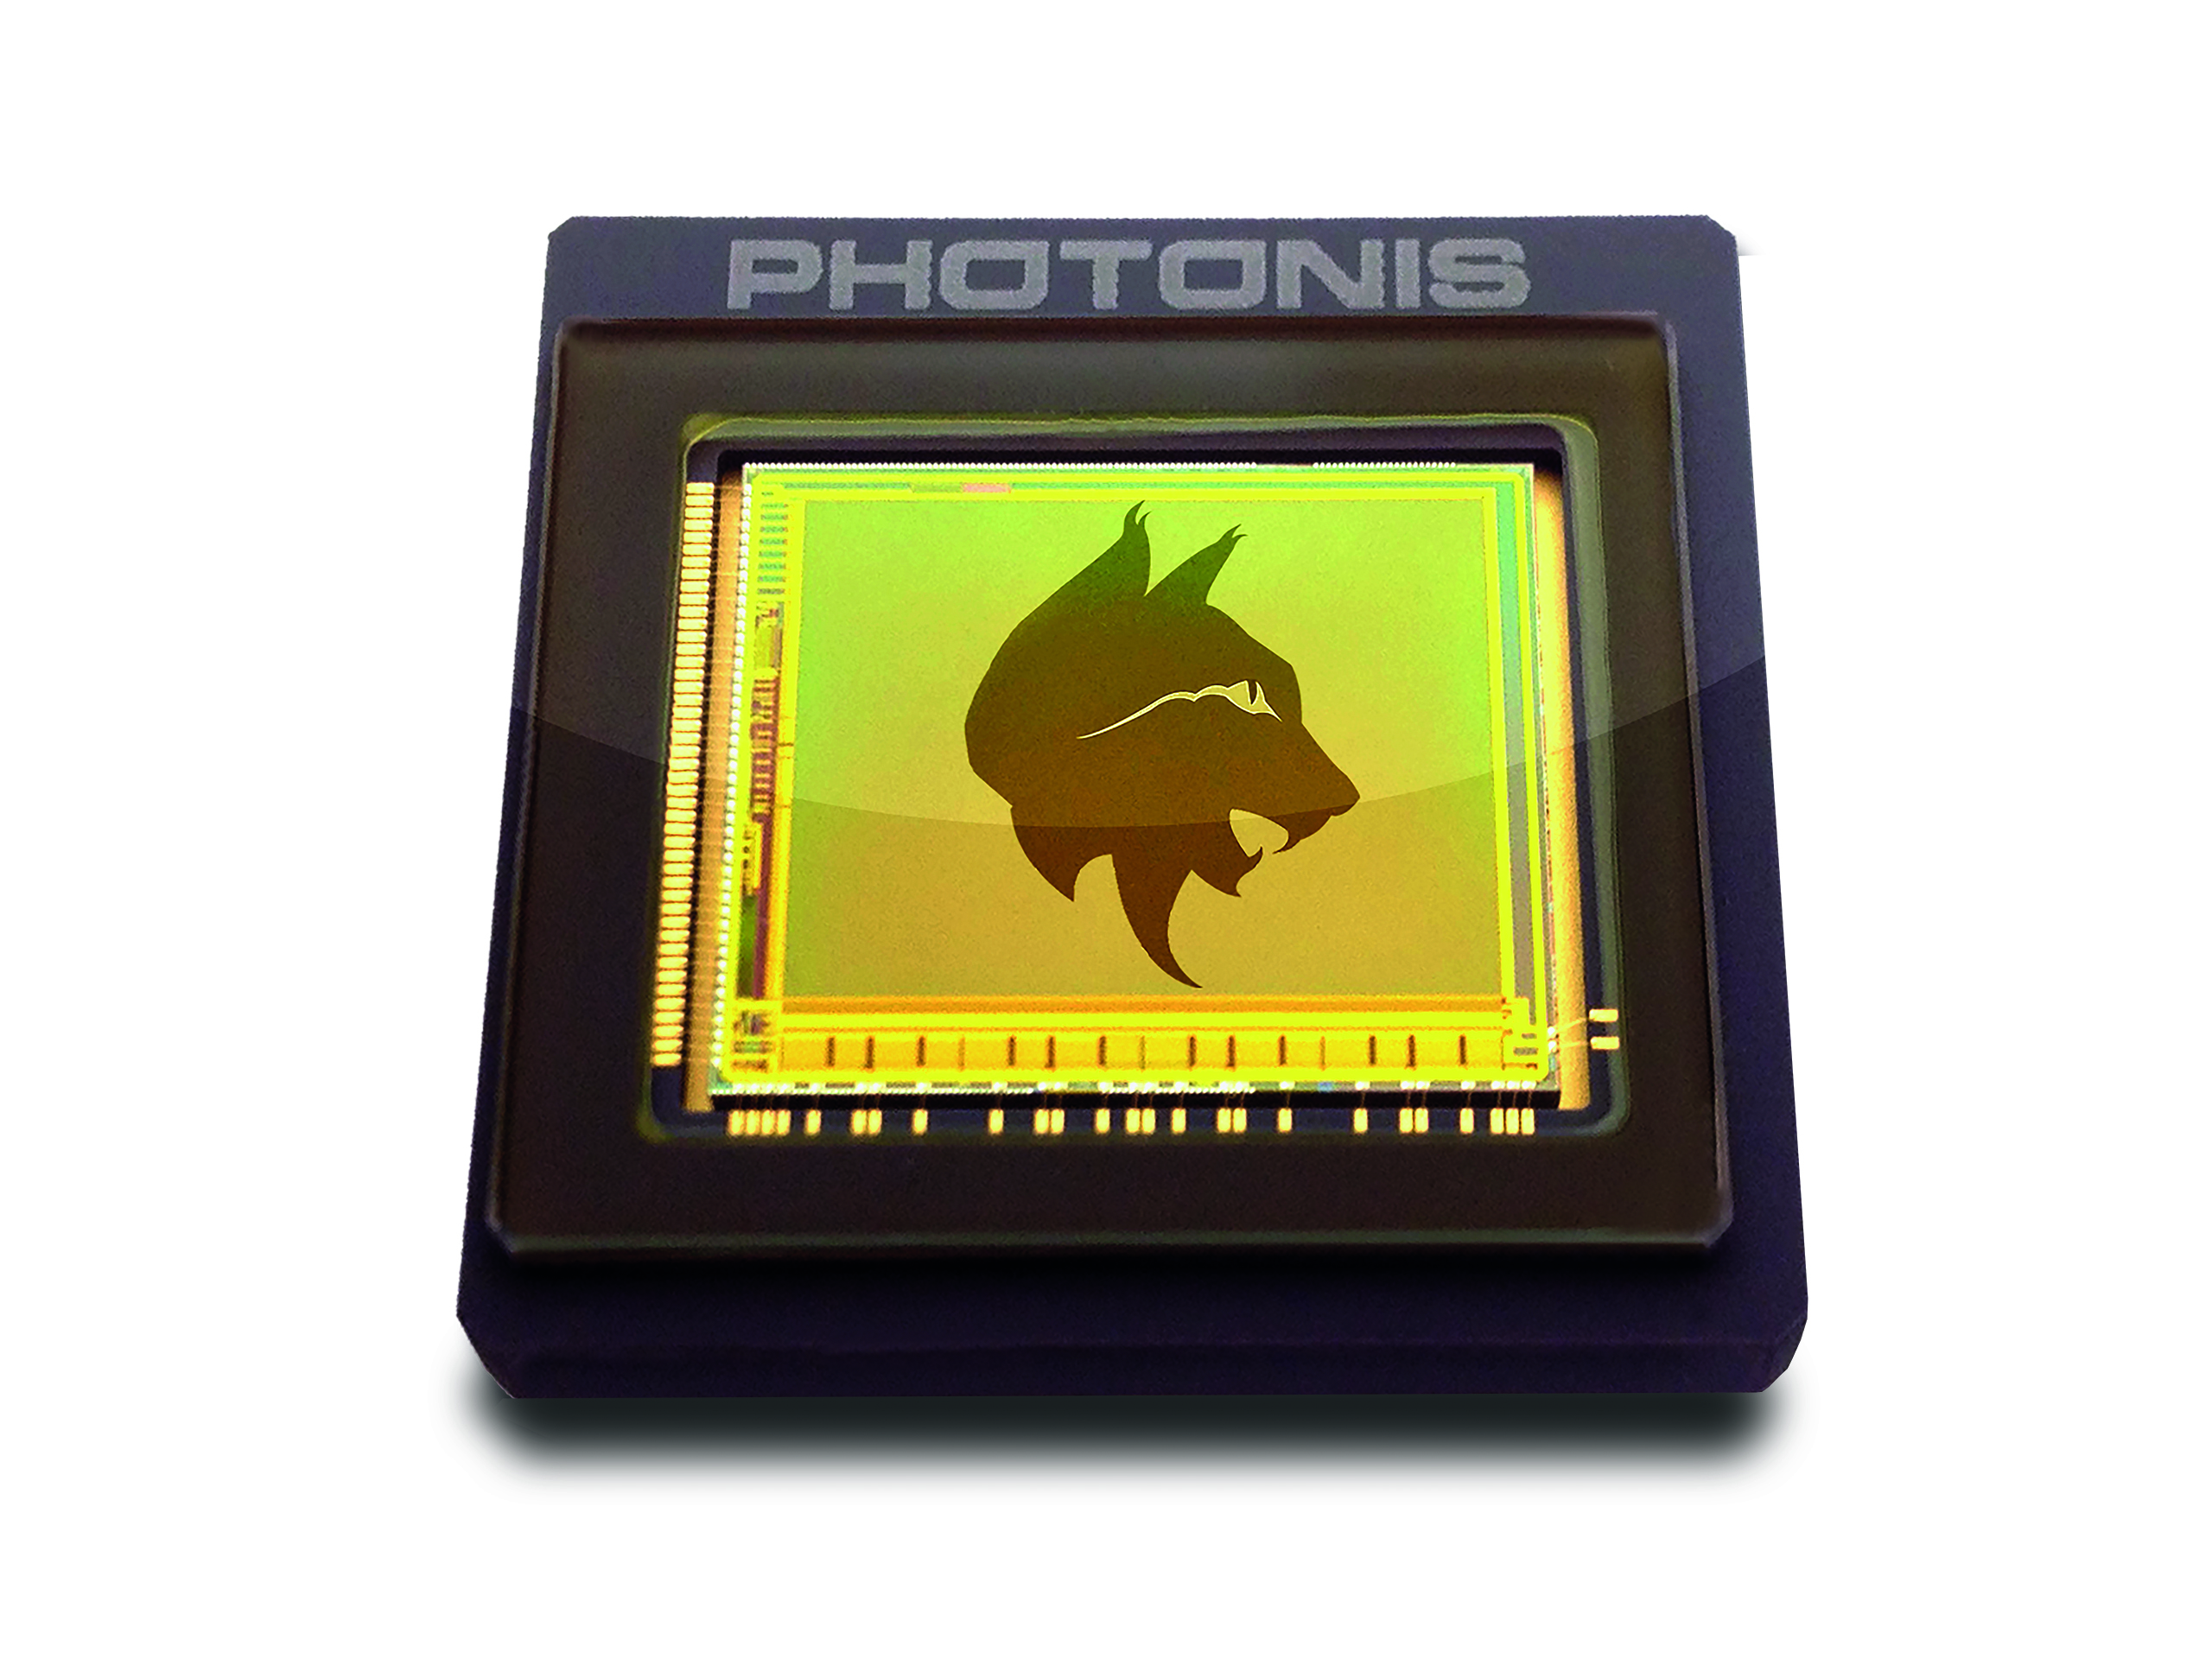 low-light level imaging LYNX sensor